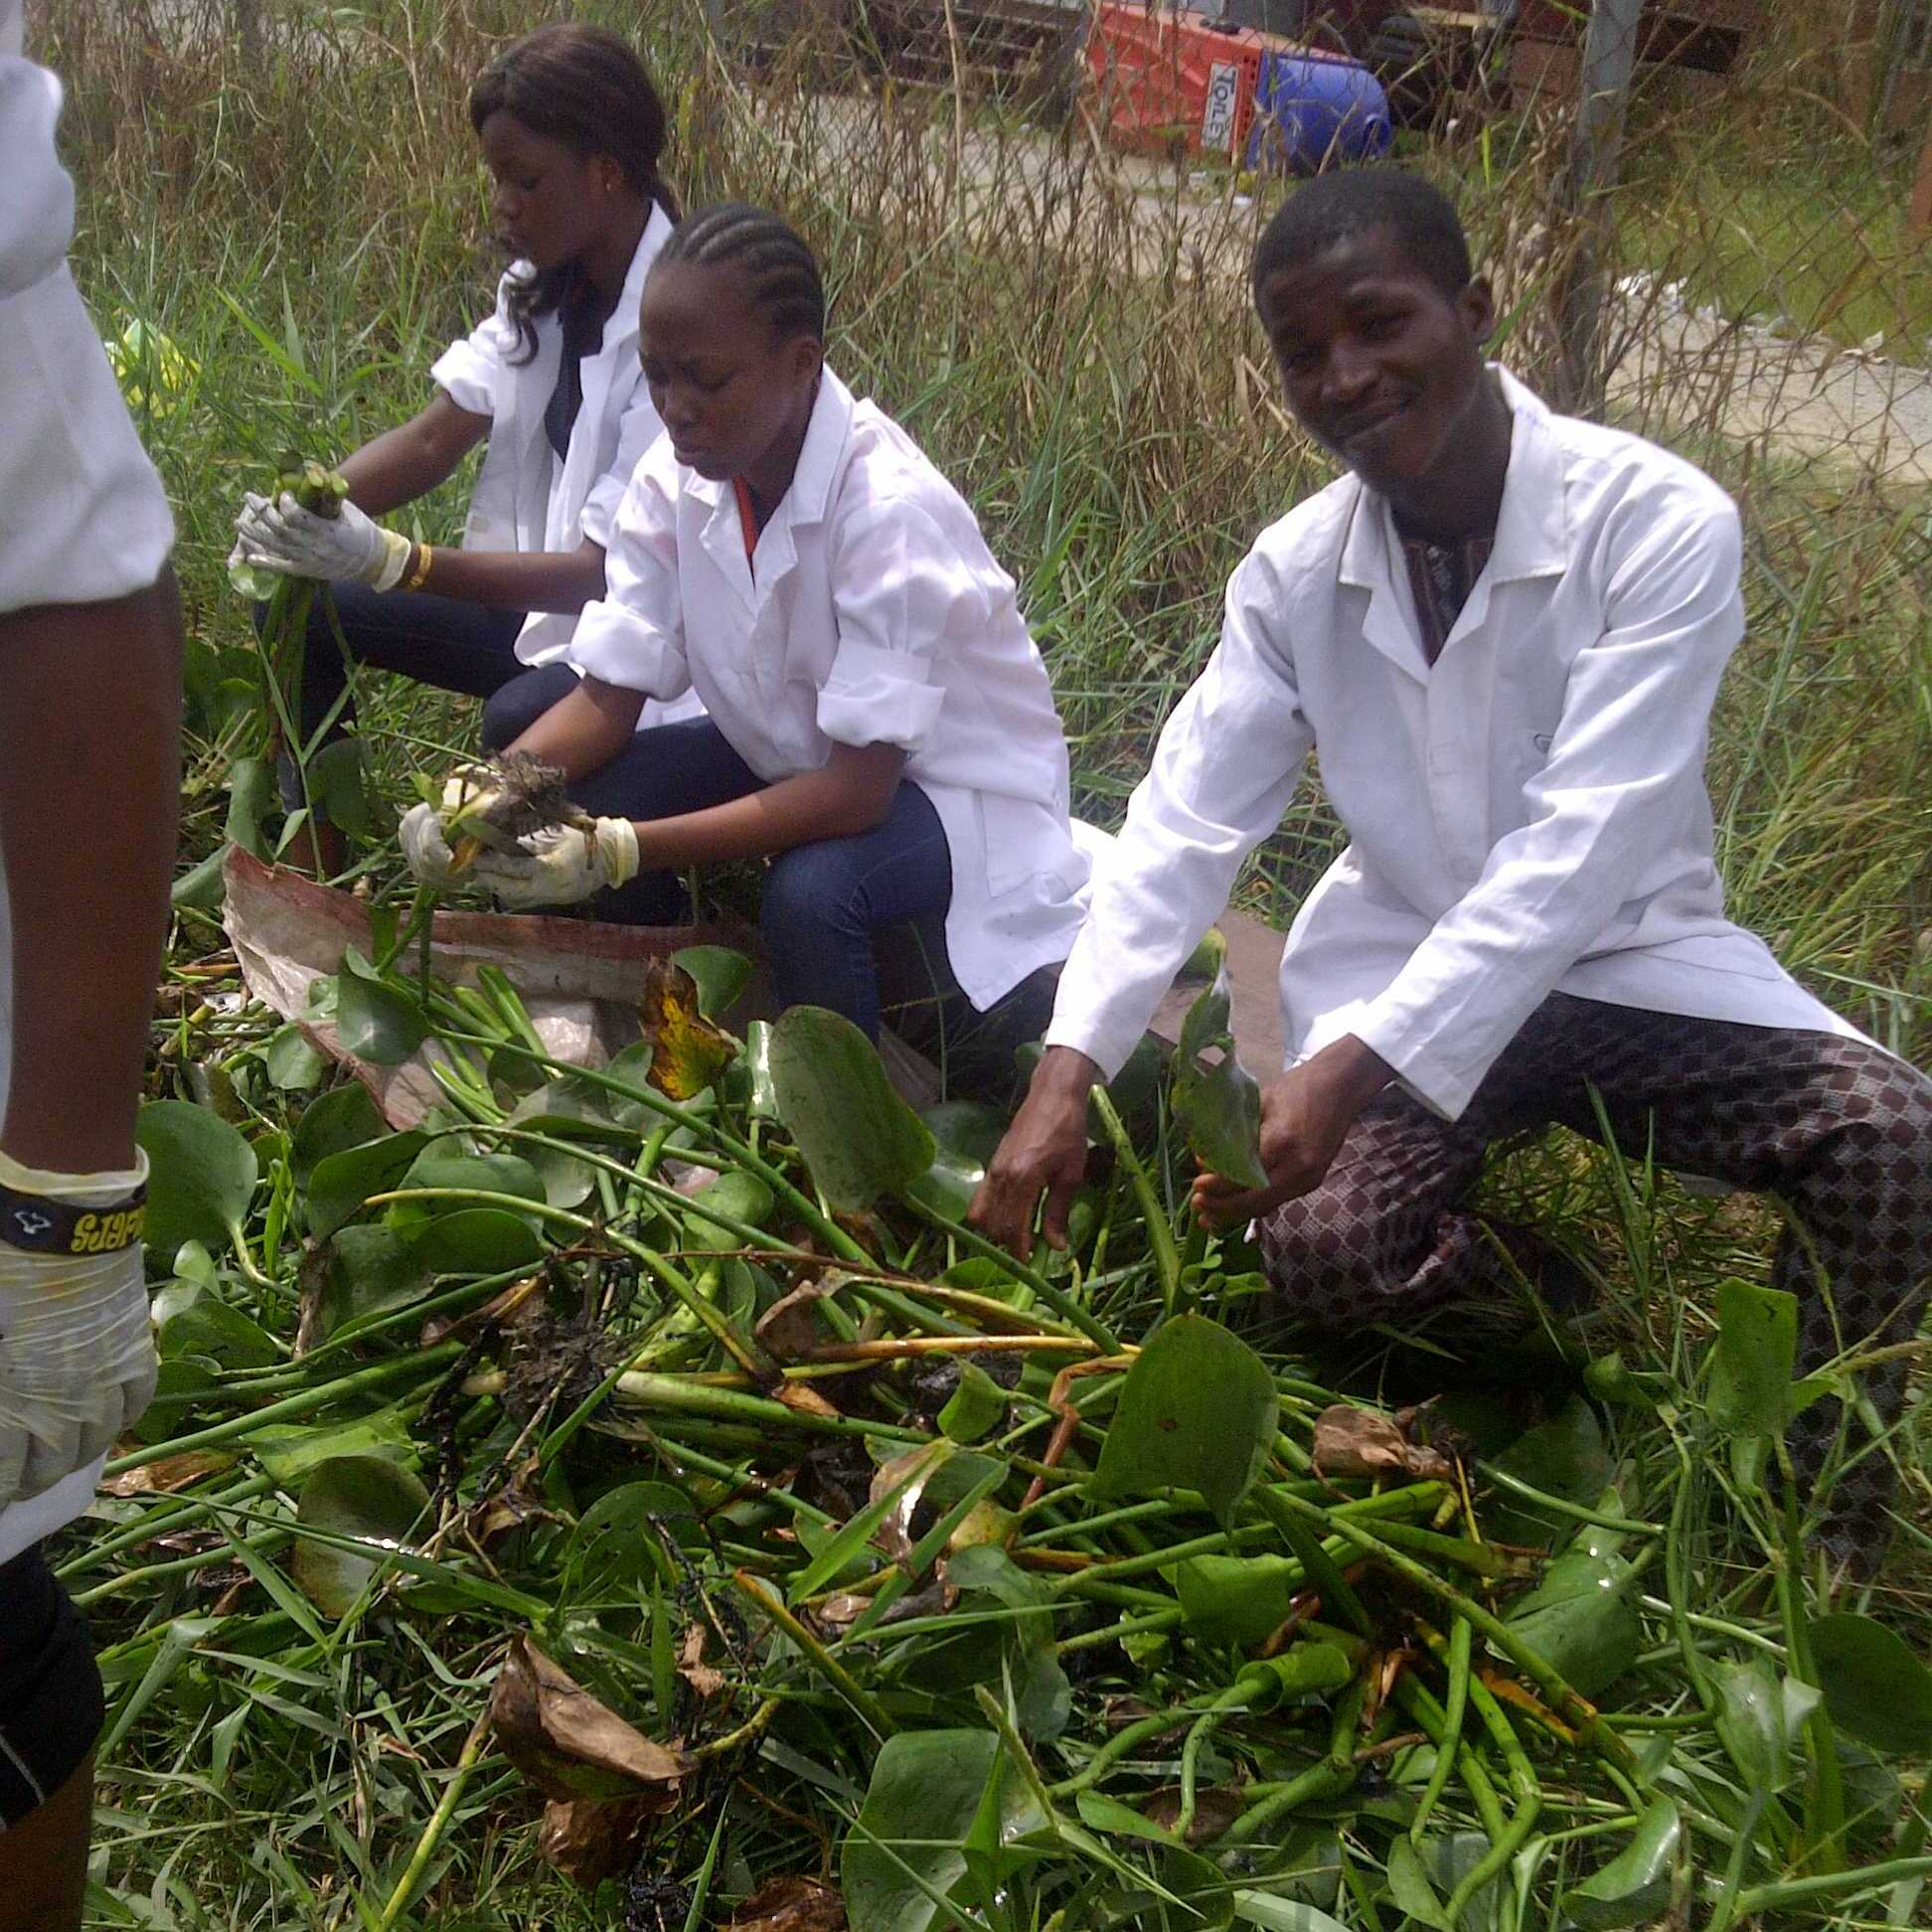 Students at work on the field